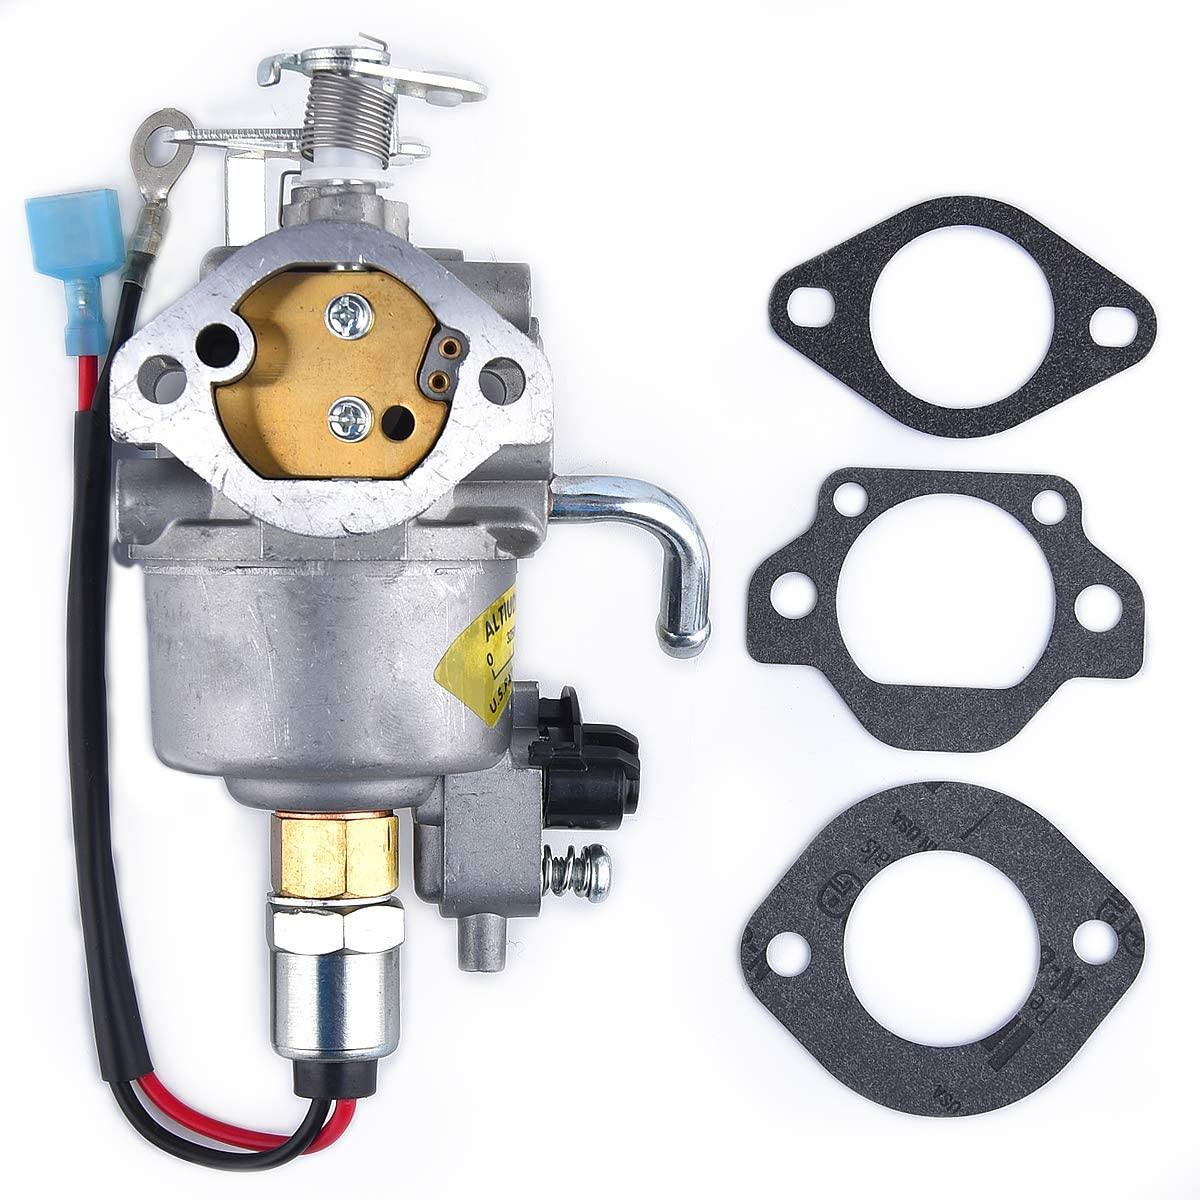 Wingsmotor RV Generator Carburetor Carb Online limited 100% quality warranty! product for A041D736 4.0 2 KY-FA